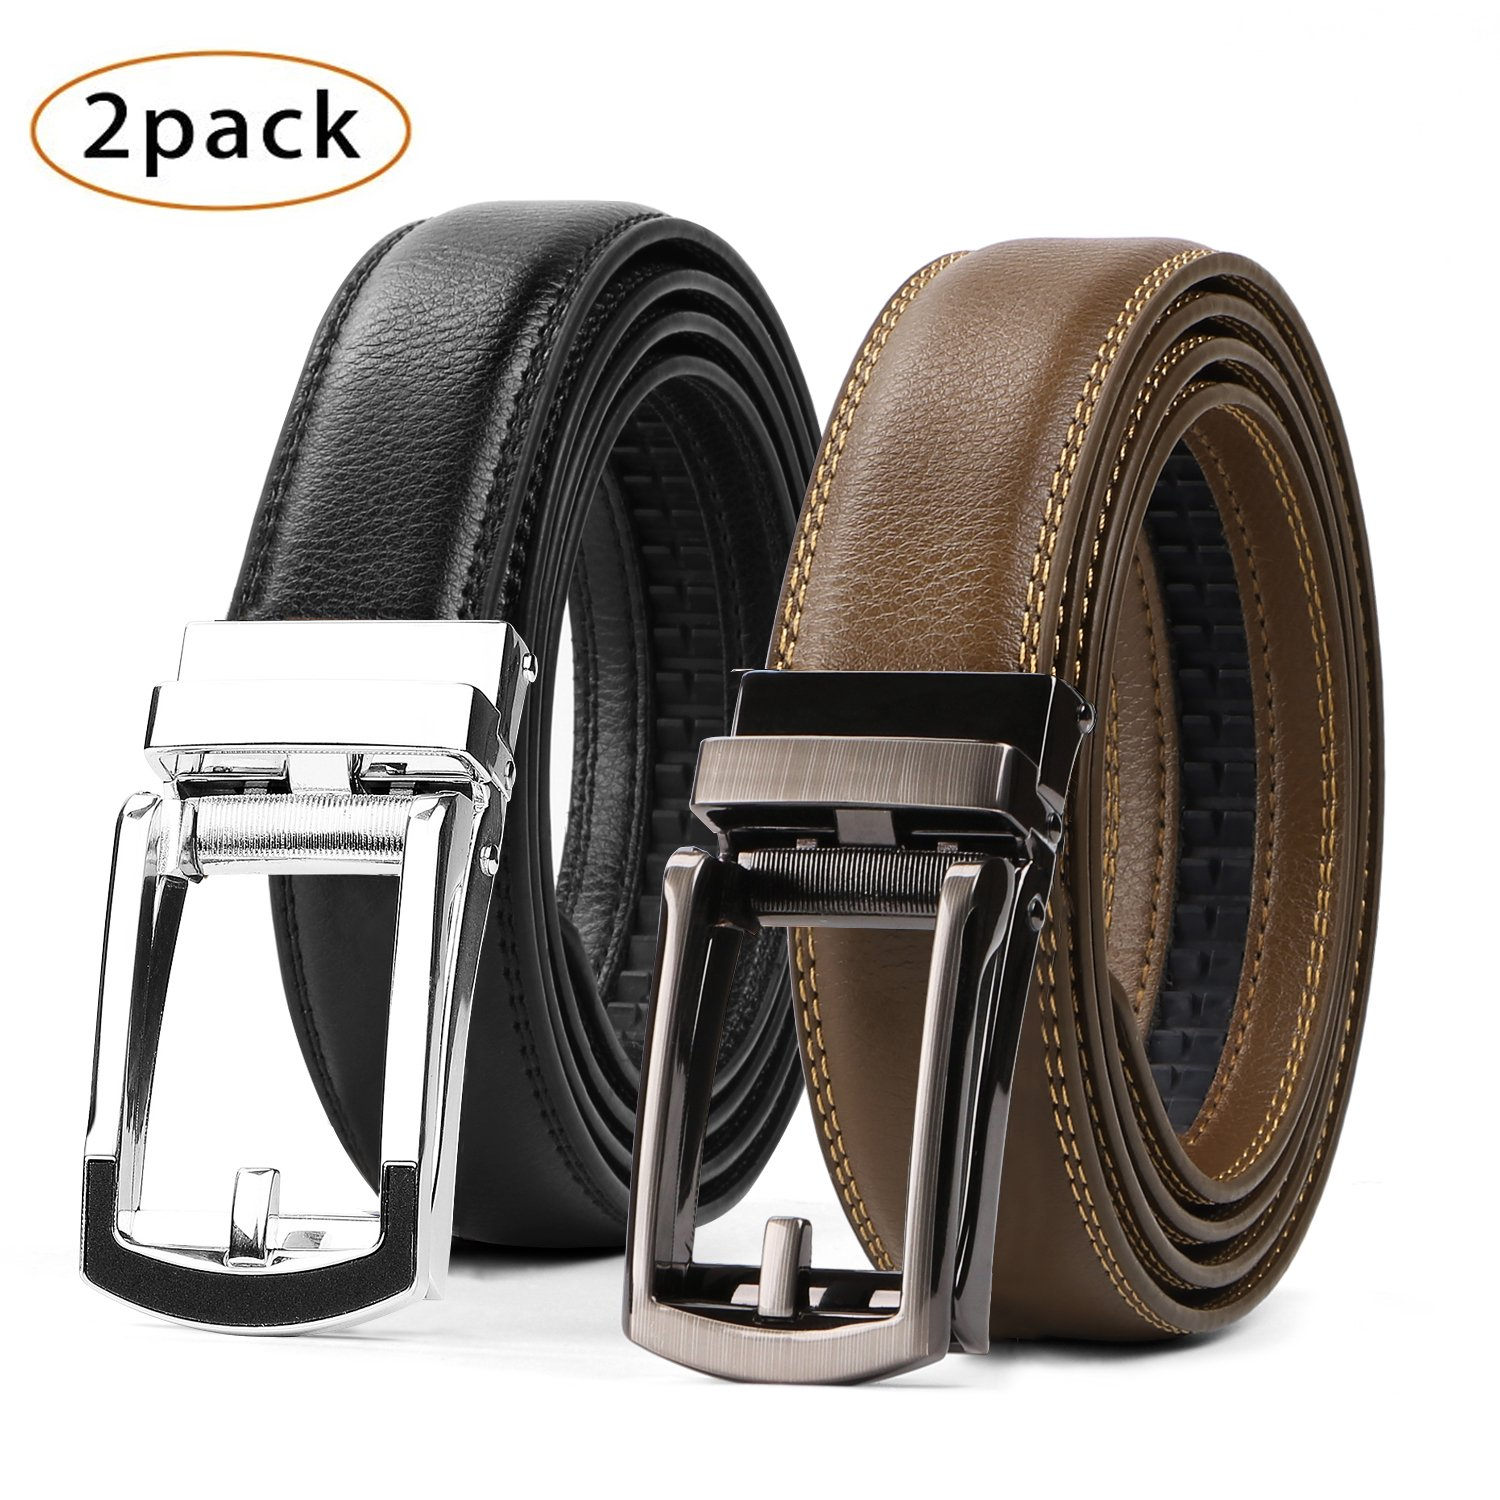 WERFORU 2 Pack Leather Ratchet Dress Belt for Men Perfect Fit Waist Size Up to 44' with Automatic Buckle JWE067- Black+ Coffee2